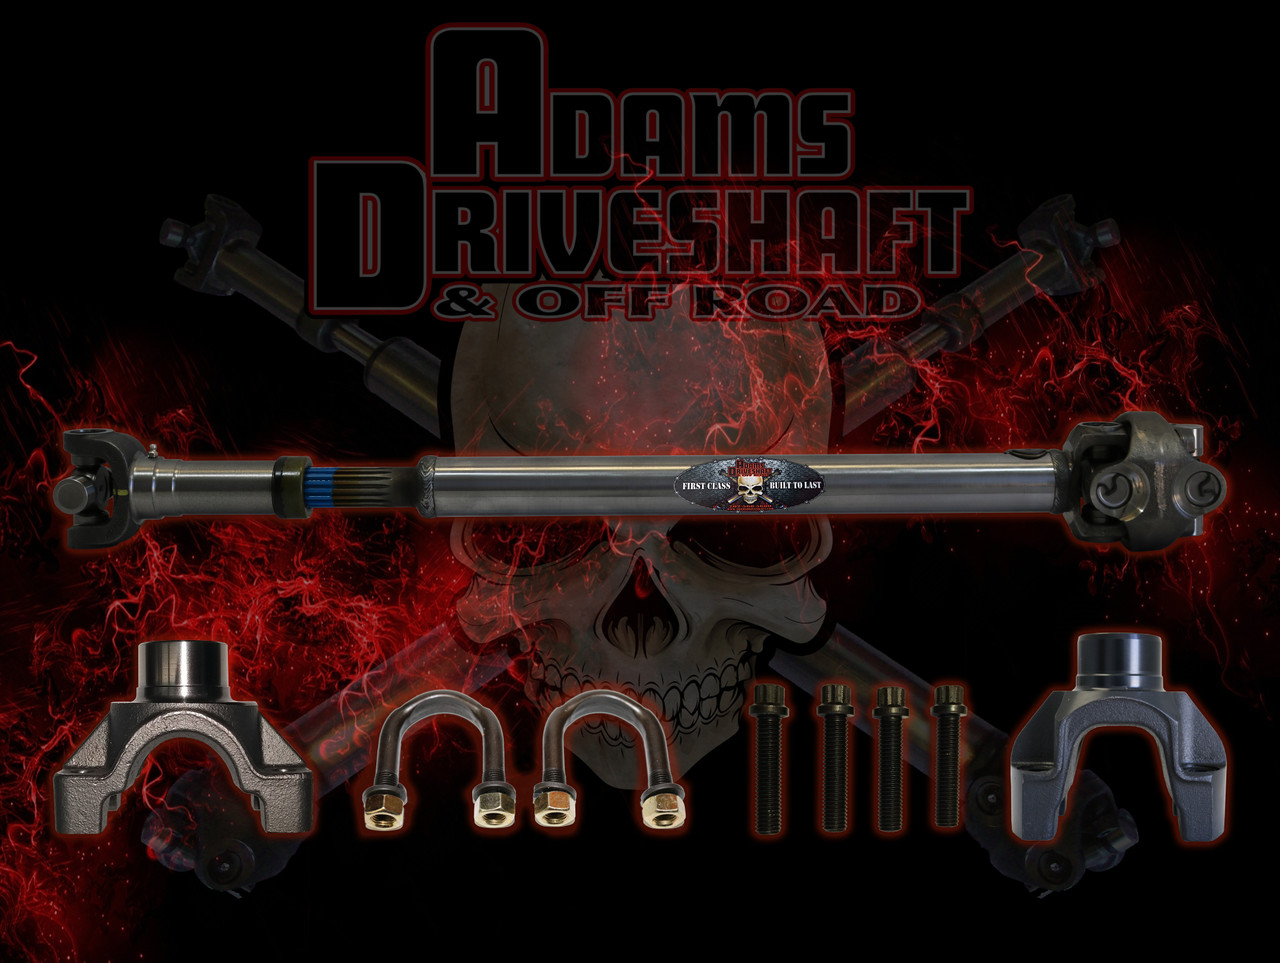 ADAMS DRIVESHAFT JEEP WRANGLER JKU FRONT AND REAR 4 DOOR 1350 CV DRIVESHAFT PACKAGE SOLID U-JOINTS EXTREME DUTY SERIES